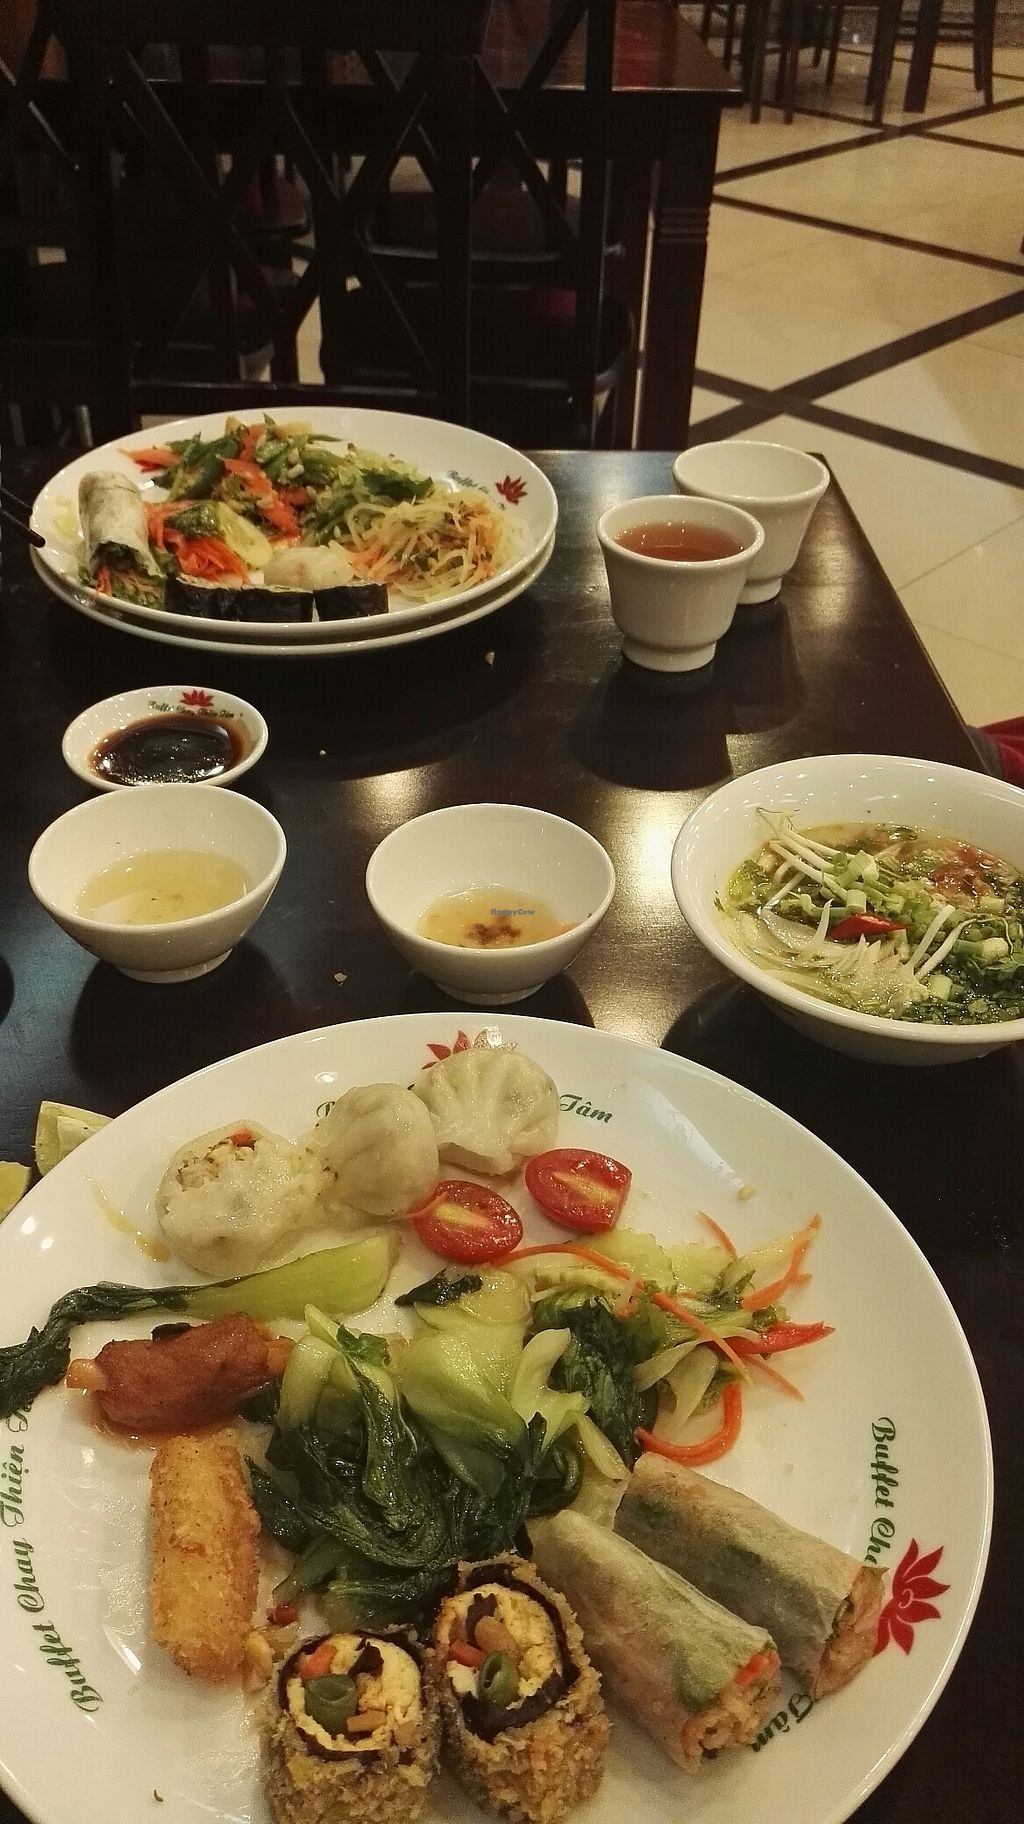 """Photo of Nha Hang Buffet Chay Thien Tam  by <a href=""""/members/profile/Valerius"""">Valerius</a> <br/>delicious food <br/> July 12, 2017  - <a href='/contact/abuse/image/92602/279458'>Report</a>"""